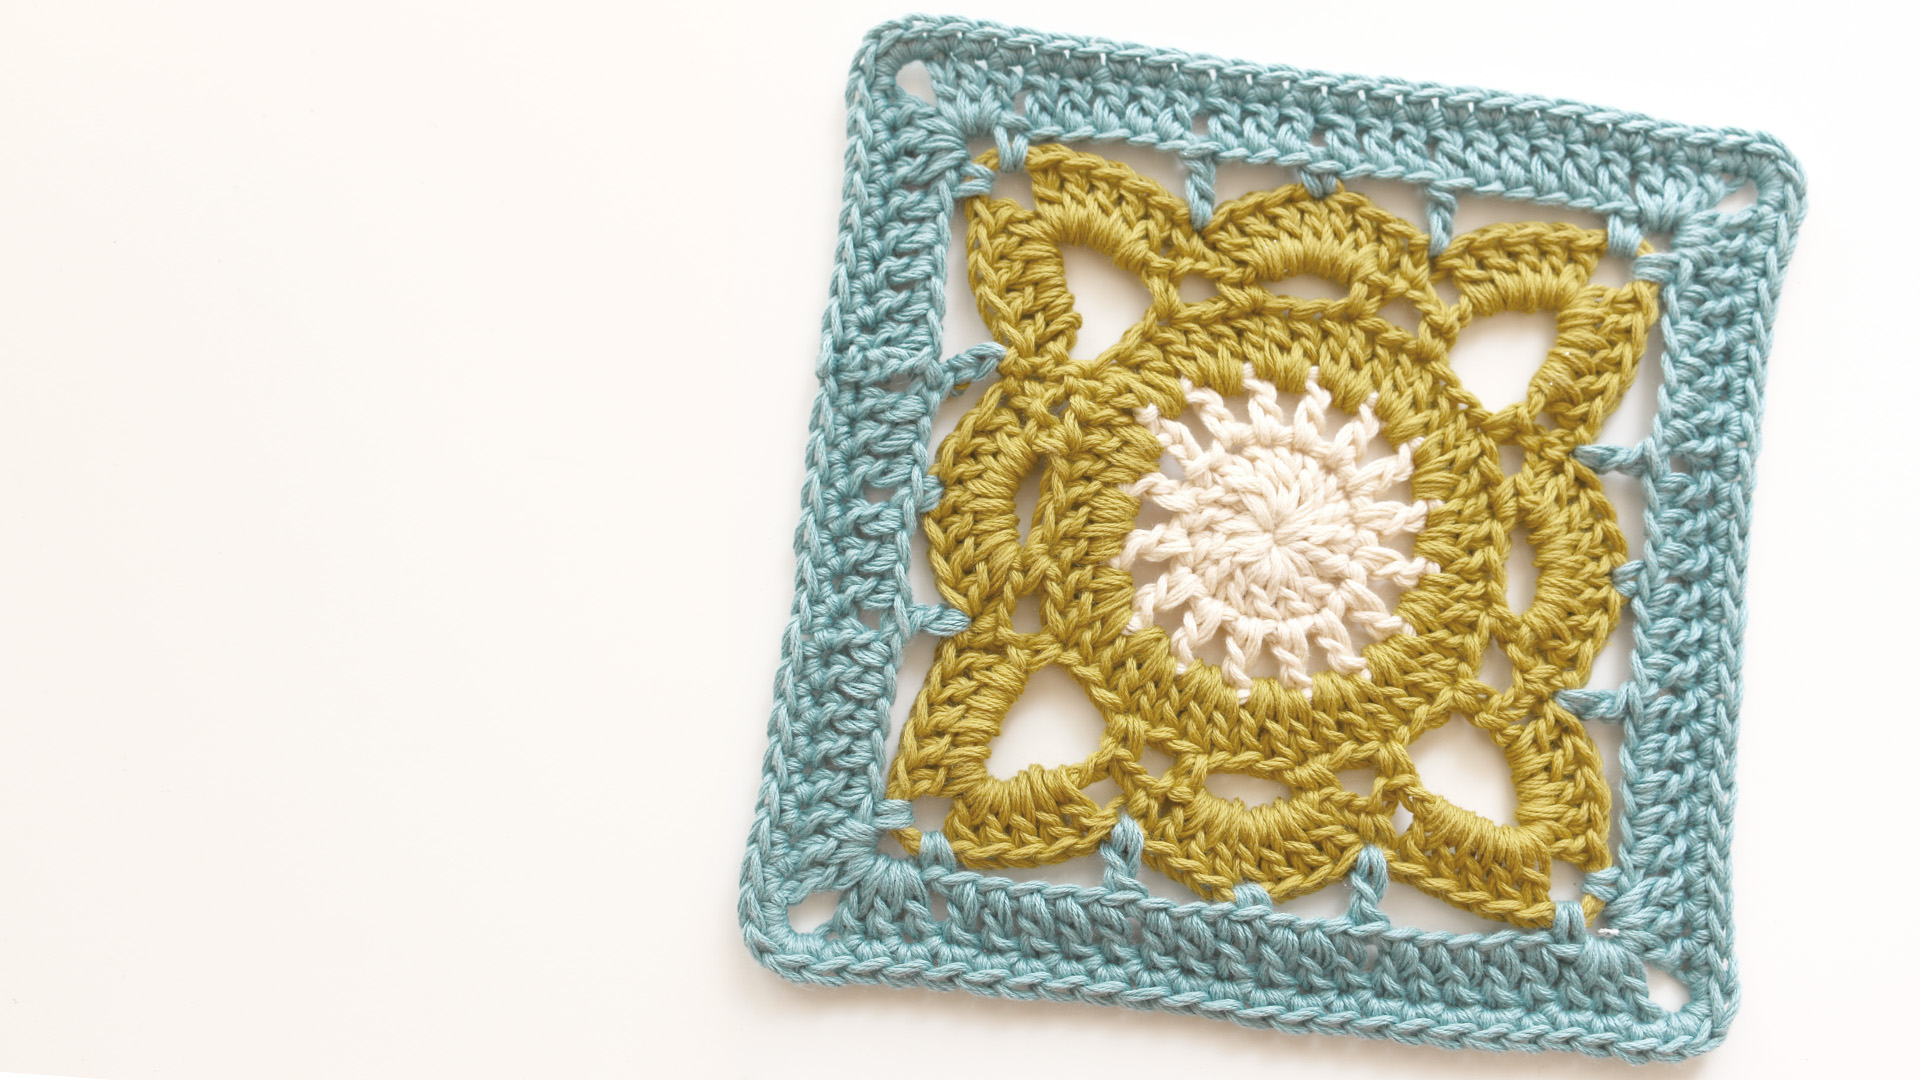 willow granny squares free crochet pattern